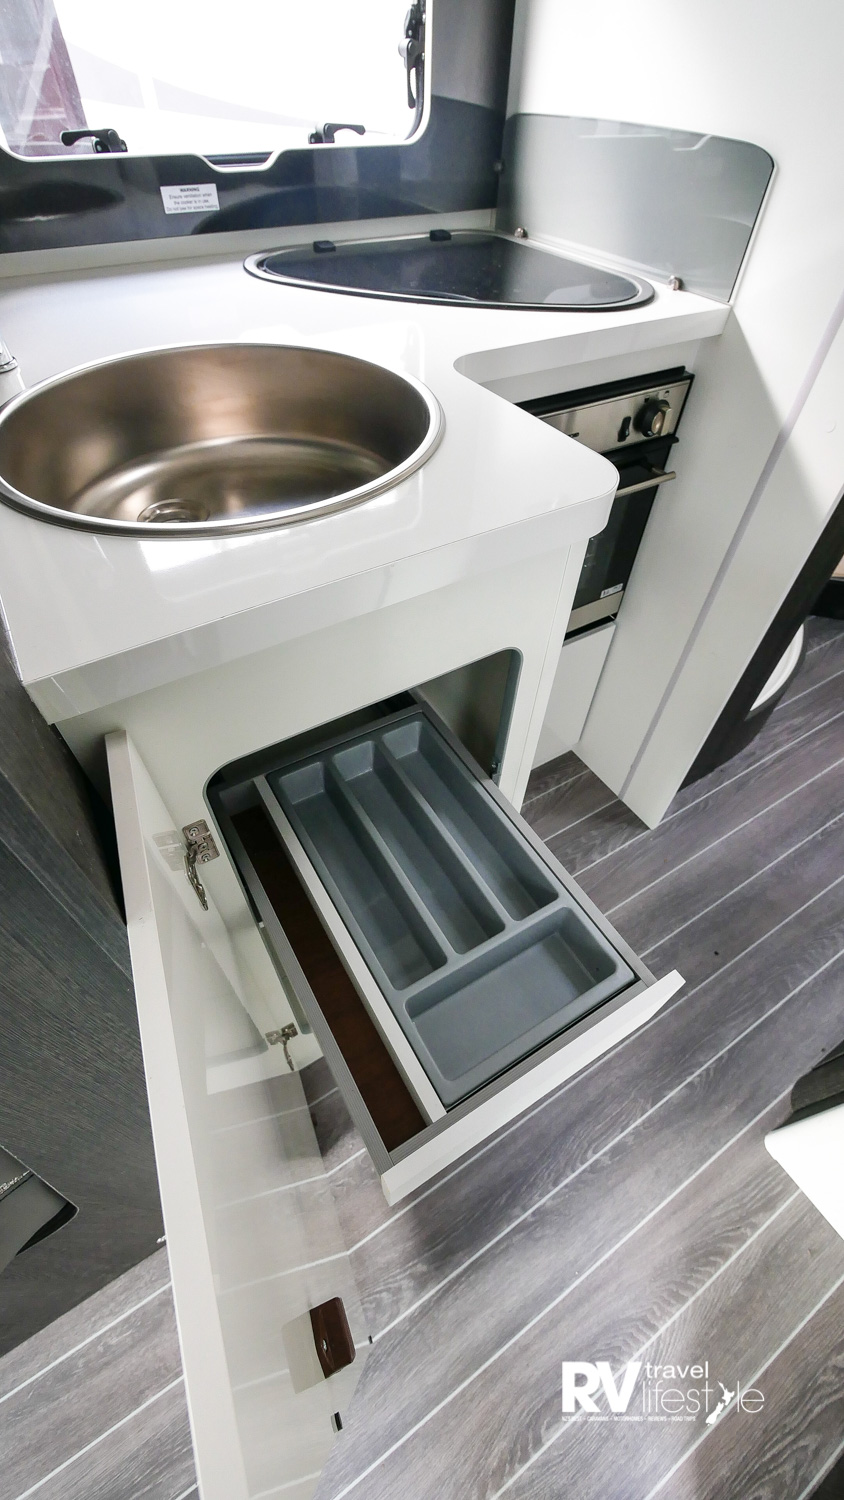 Storage and utility drawer under the sink unit